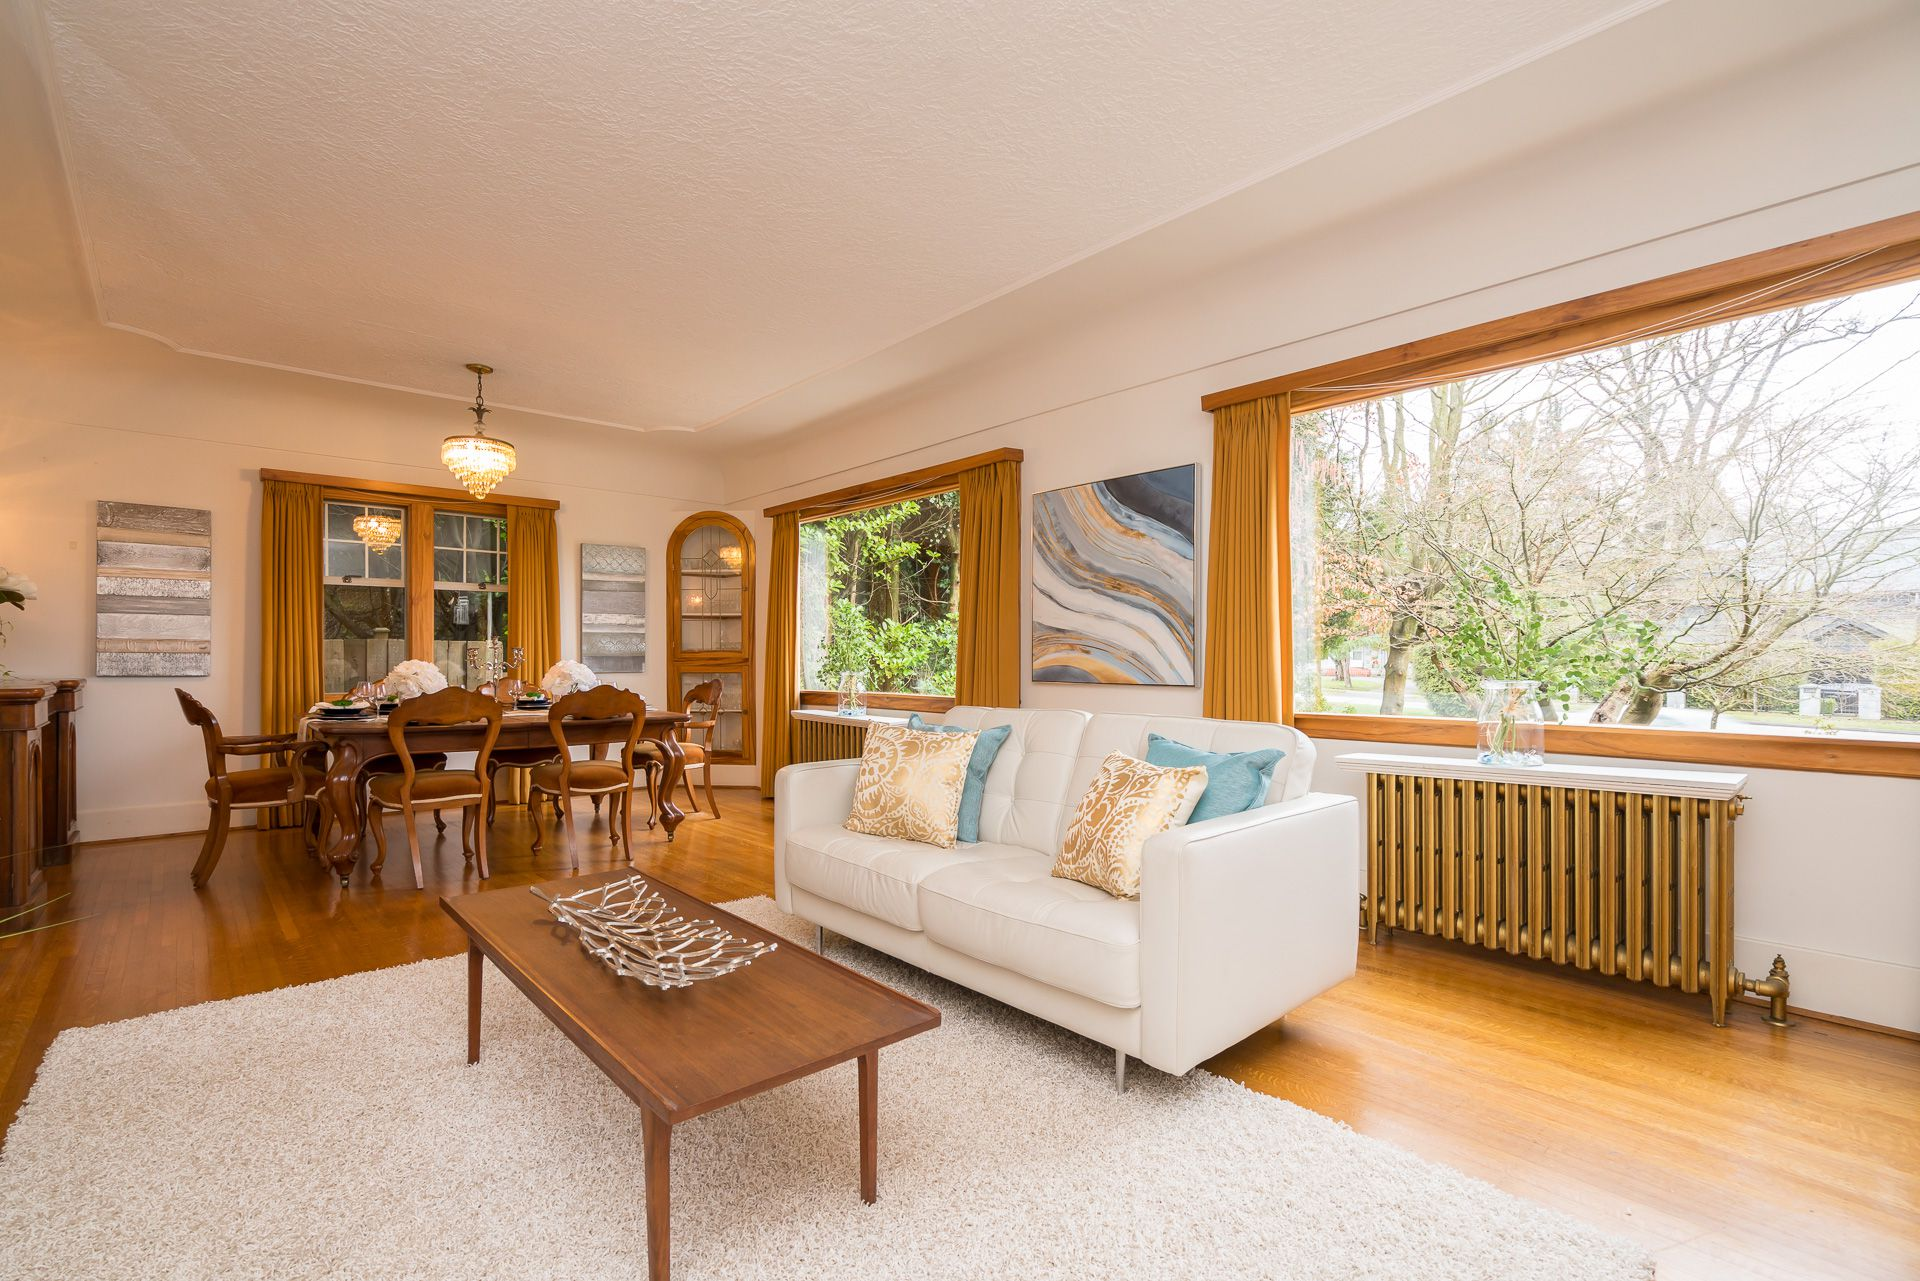 Large main living room with dining area and woodburning fireplace. Tons of natural light from large windows